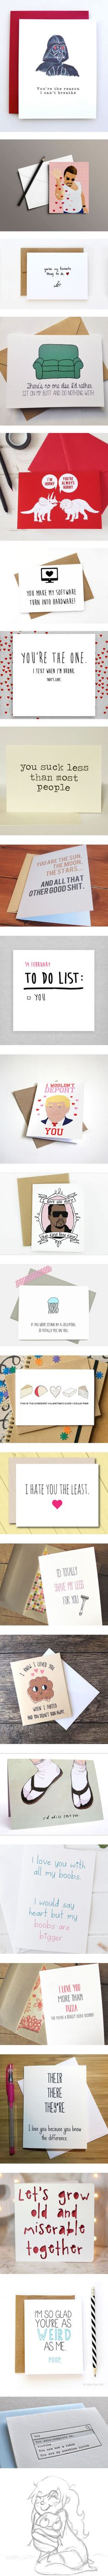 Valentine's Day Cards For Couples Who Hate Corny Love Crap Funny Friend Memes, Funny Kid Memes, Funny Jokes To Tell, Funny Memes About Girls, Love Memes, Funny Quotes, Good People Quotes, Couples Quotes Love, Couple Quotes